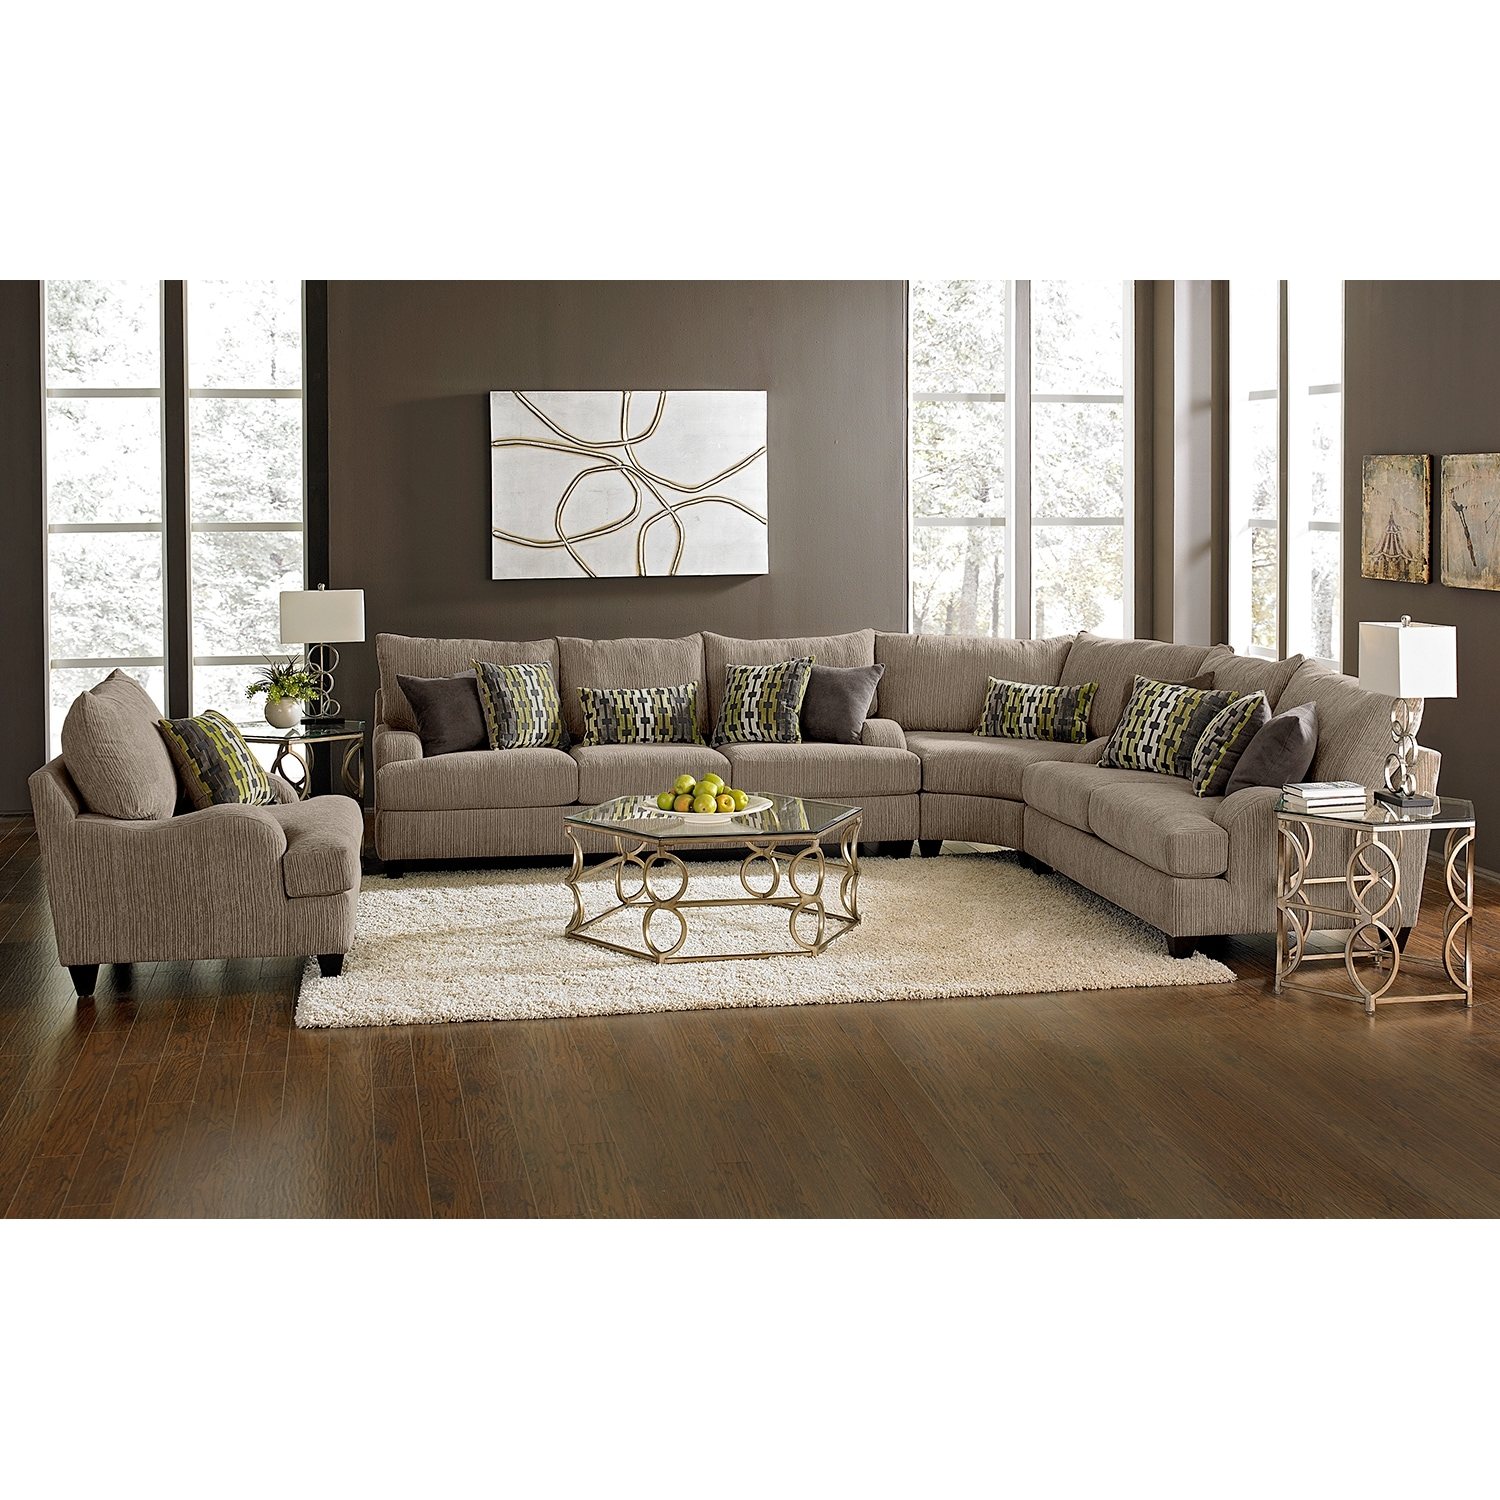 Hollister ii 3 piece sectional for Living room furniture collections